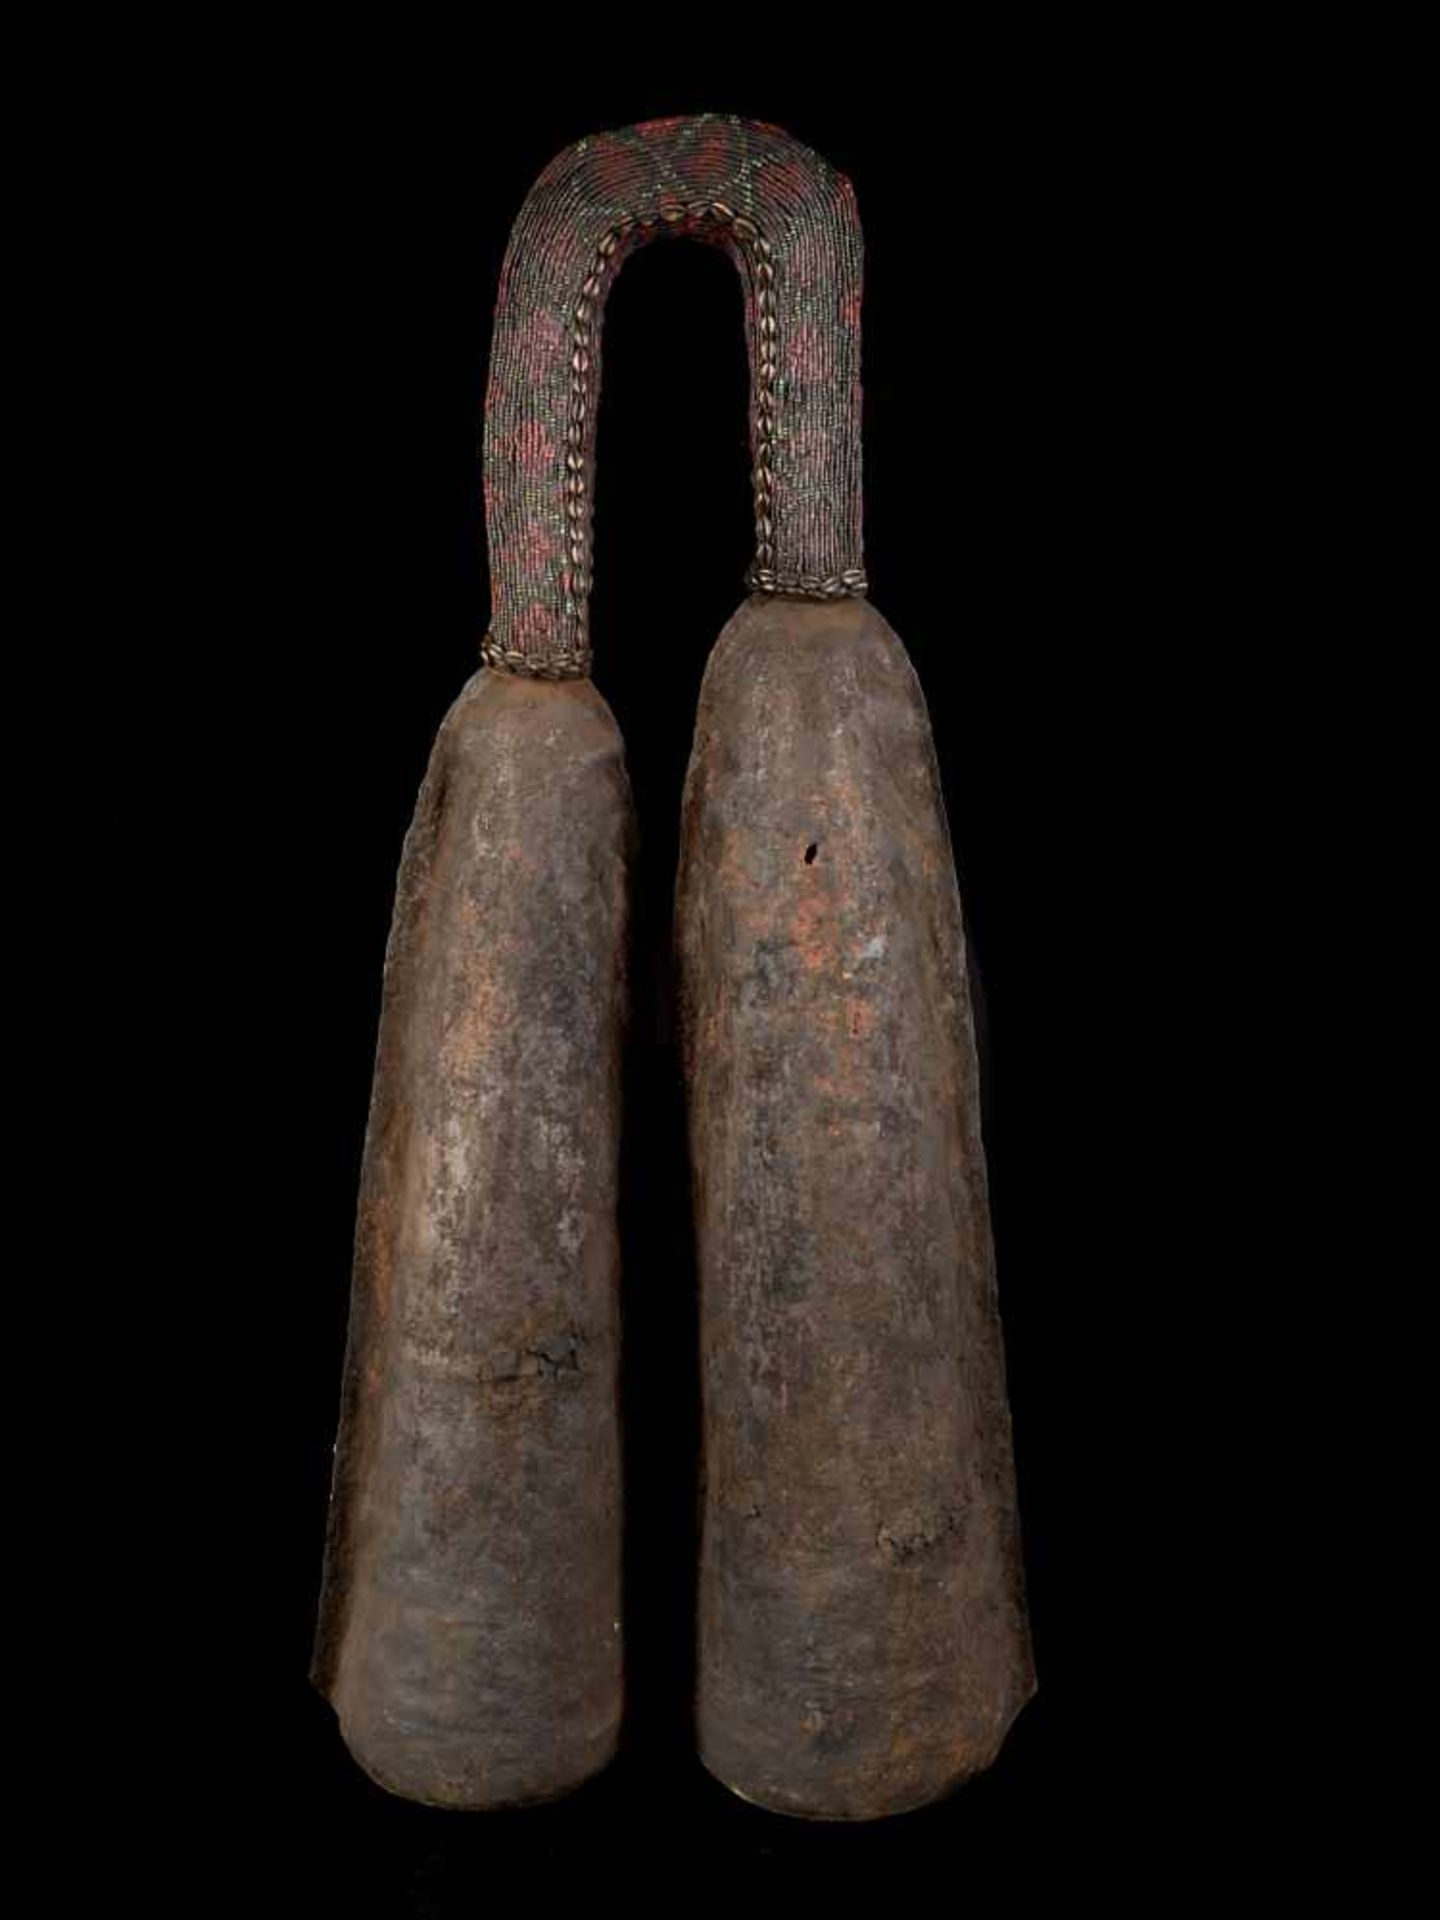 Ceremonial Double Gong With Beaded Handle - Tribal ArtThis ceremonial double gong consists of two - Bild 5 aus 6